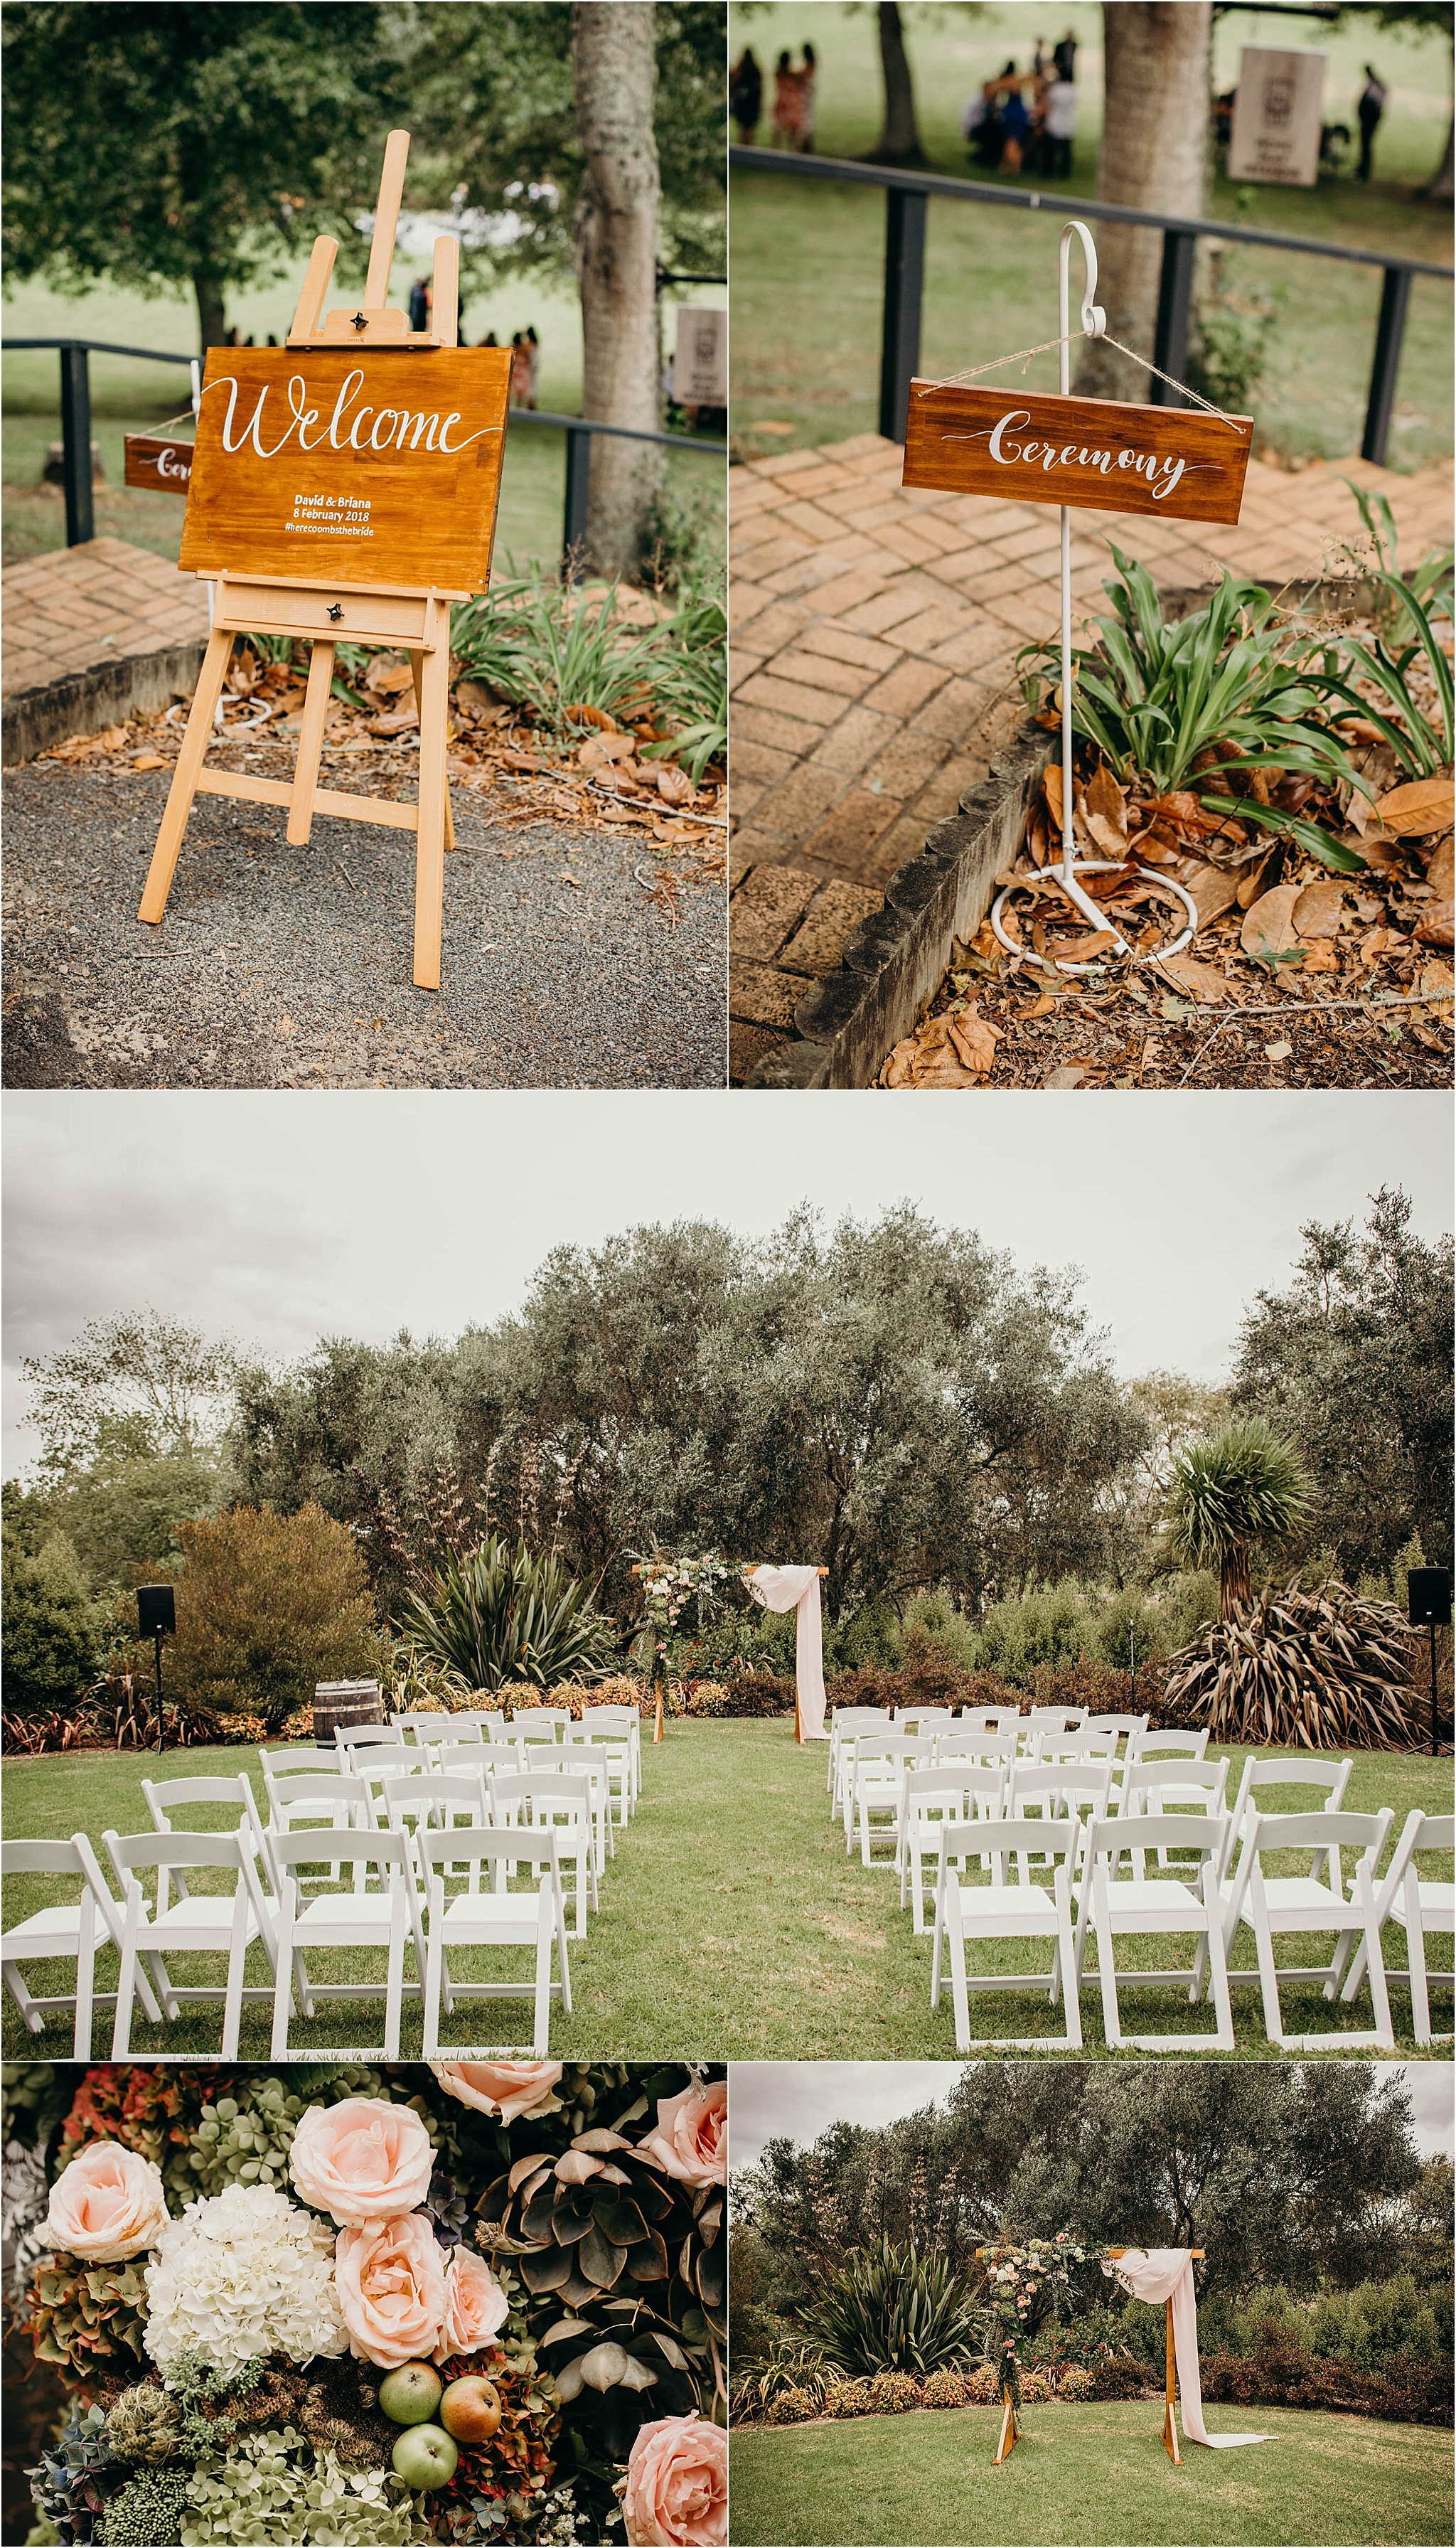 Auckland-Wedding-Photographer-Briana-Dave-Hunting-Lodge-Winery-Married_0026.jpg